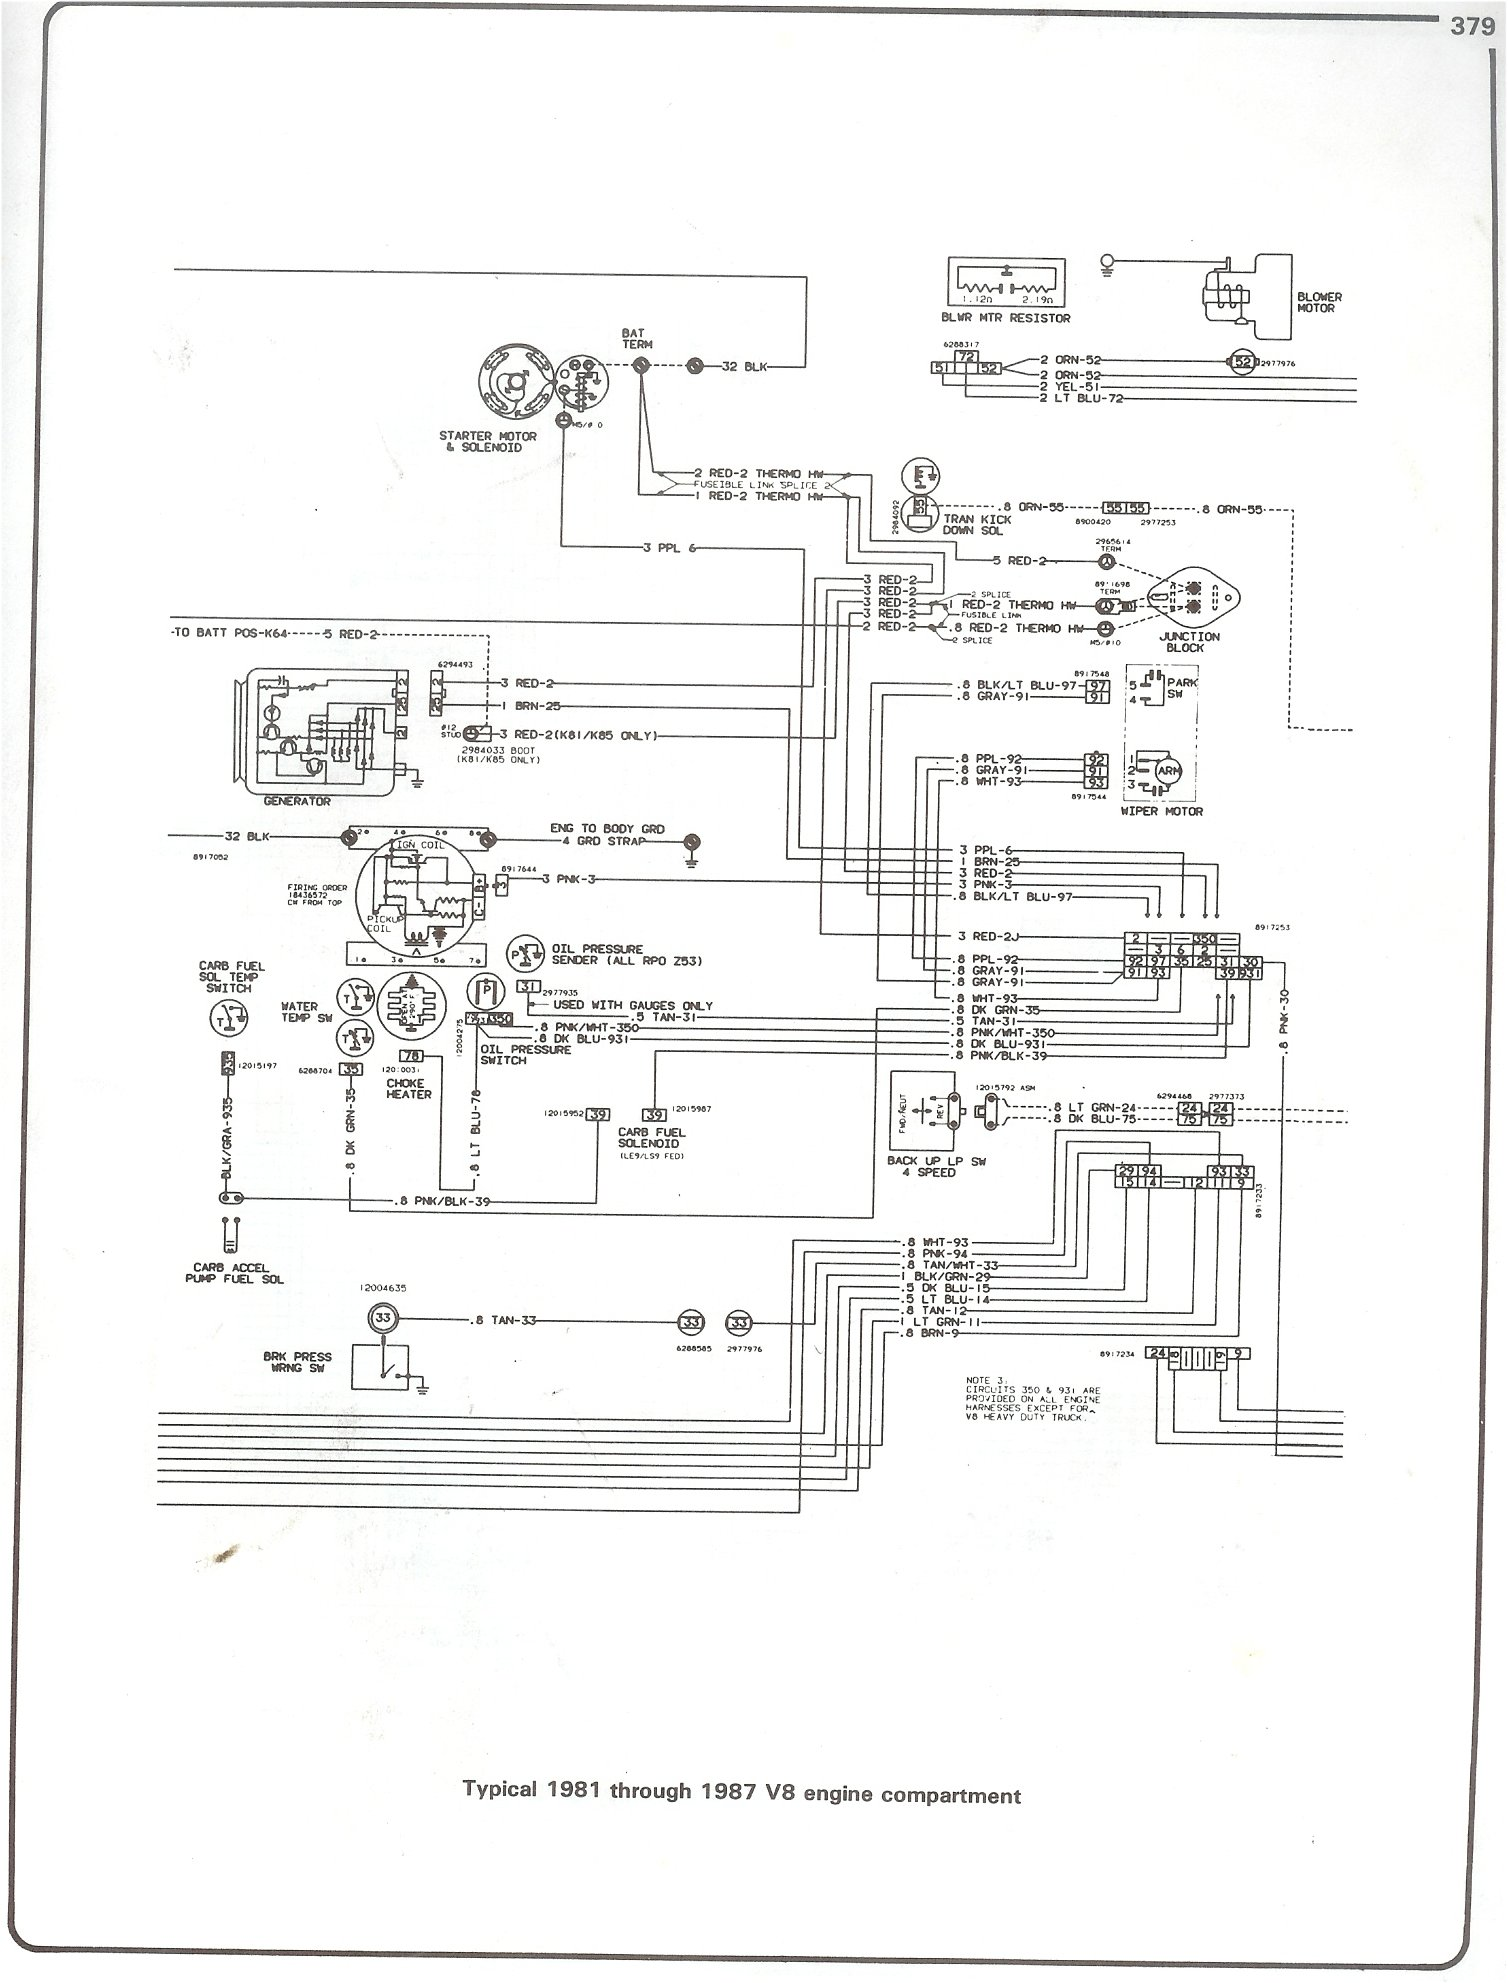 81 87_V8_engine complete 73 87 wiring diagrams wiring diagrams 79 chevy blazer at fashall.co